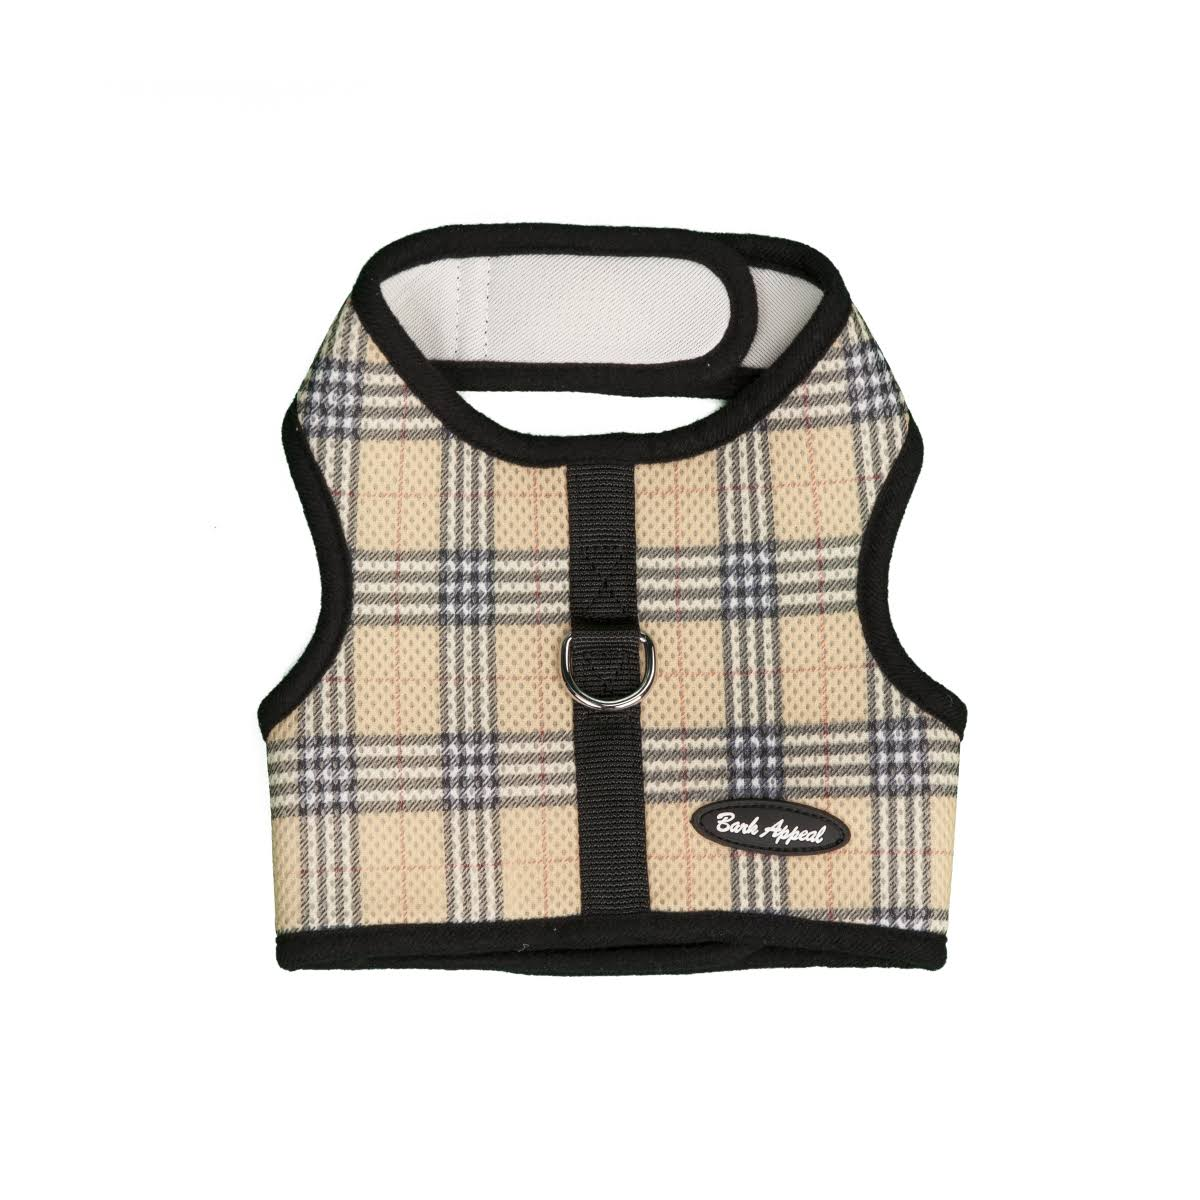 Bark Appeal Plaid Mesh Wrap N Go Harness - Tan, Large